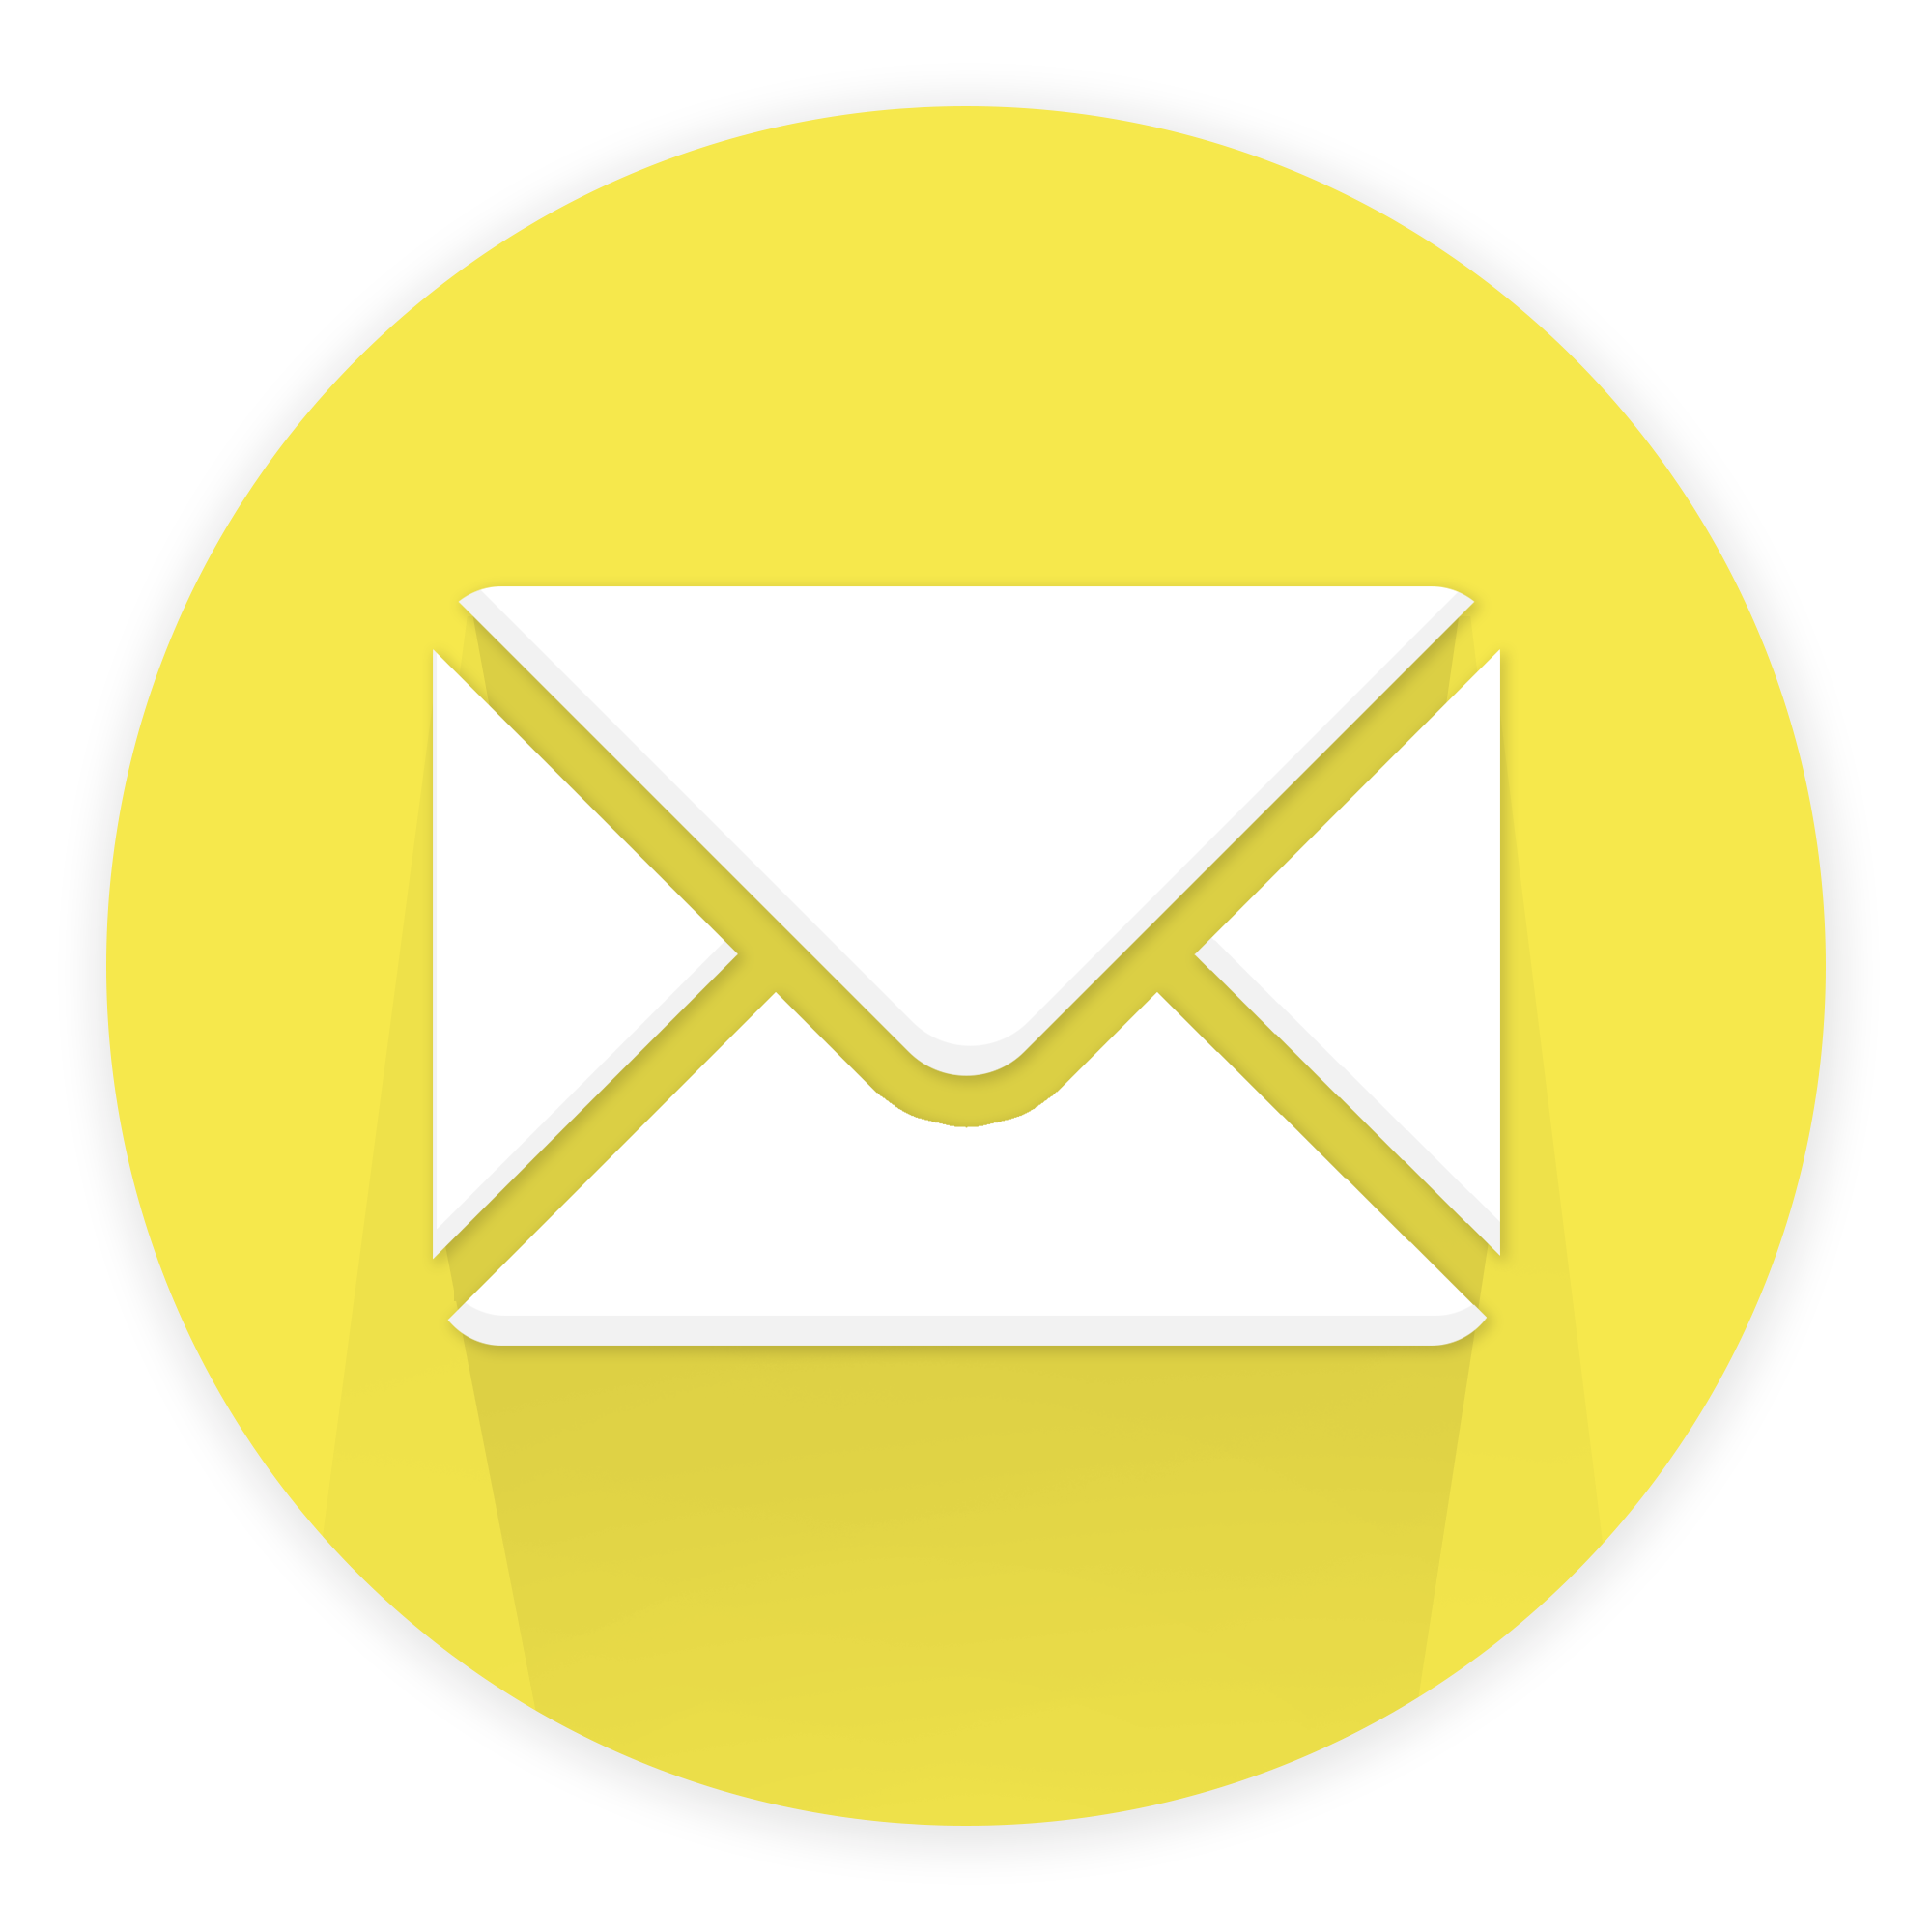 clipart of white envelope in yellow circle